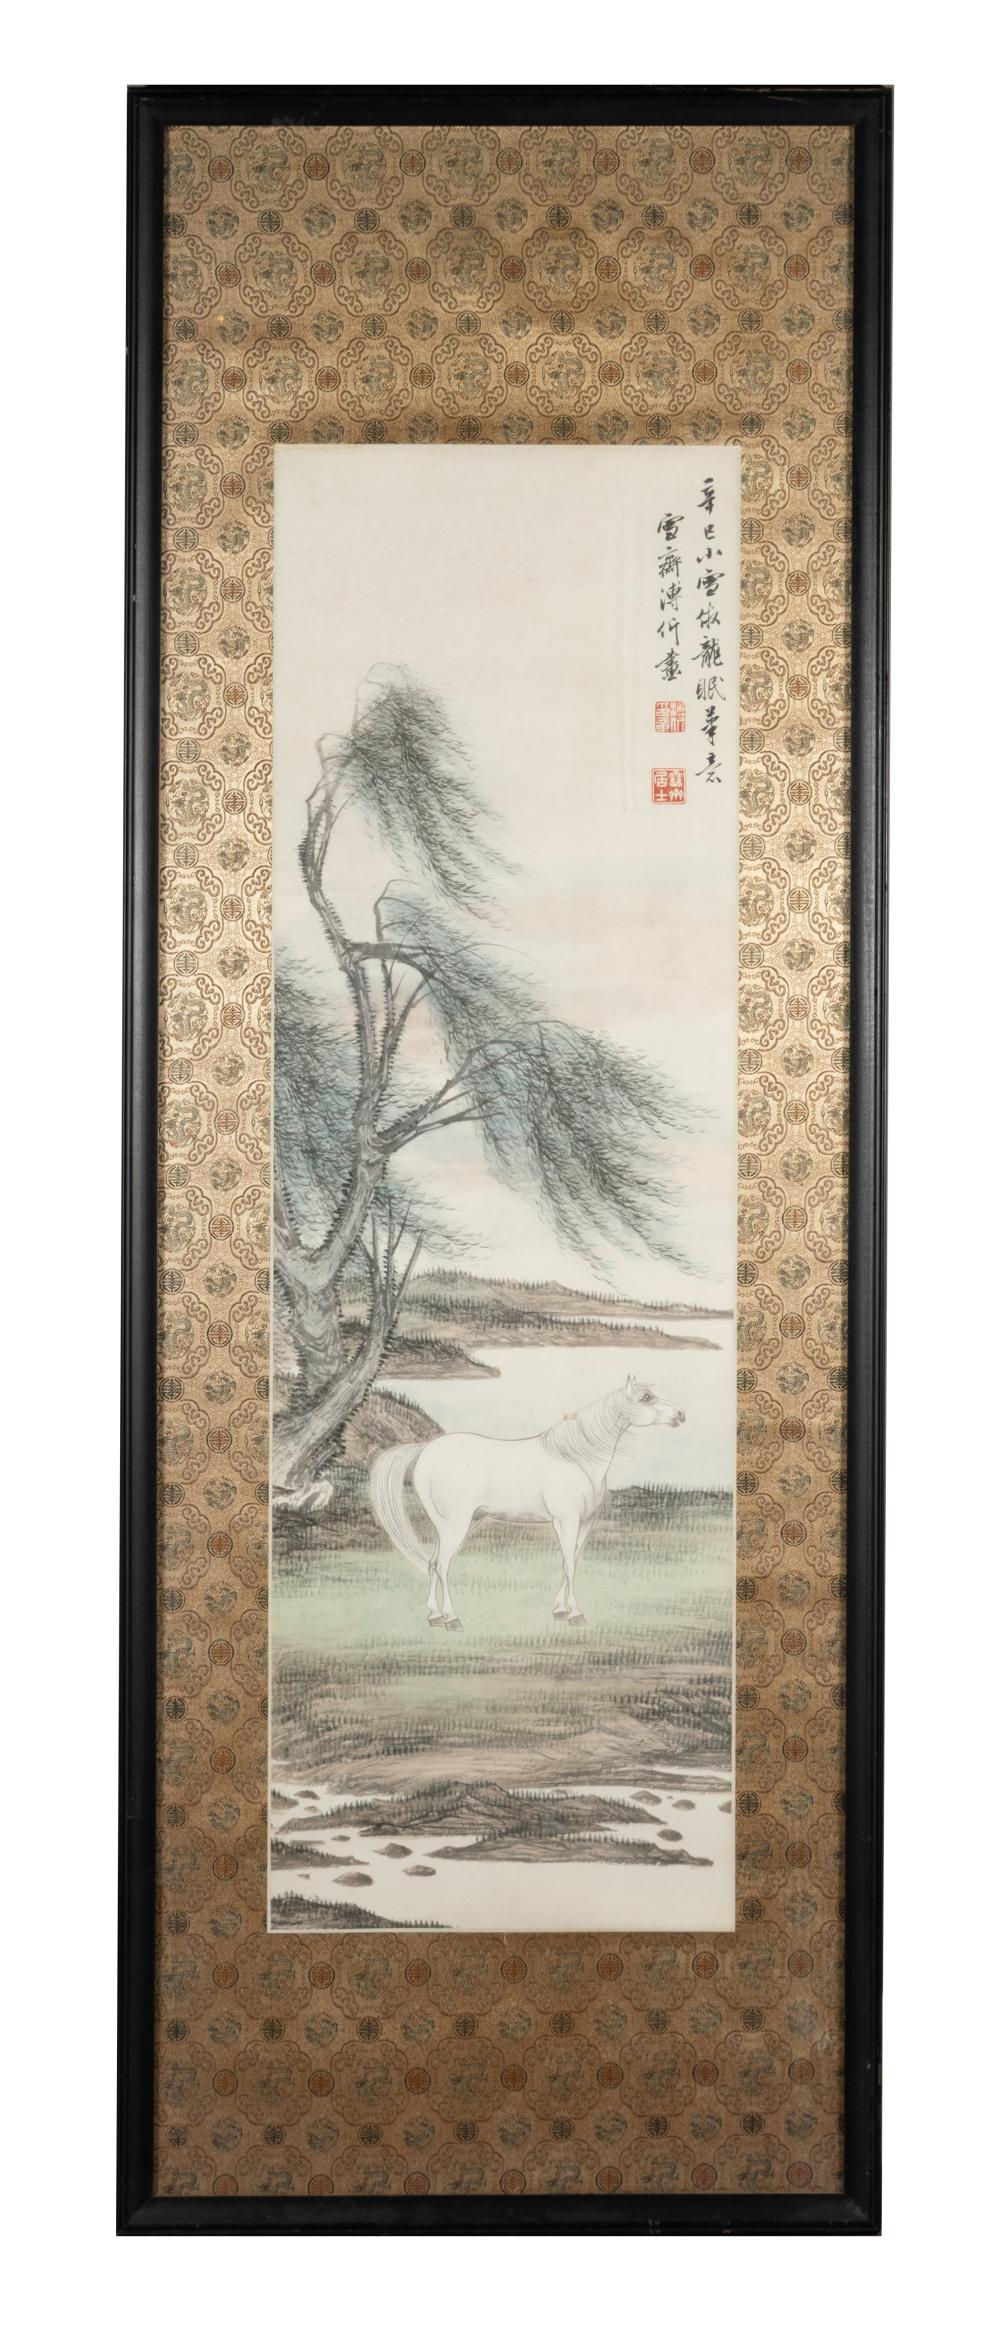 FRAMED PAINTING OF A HORSE BY PU JIN